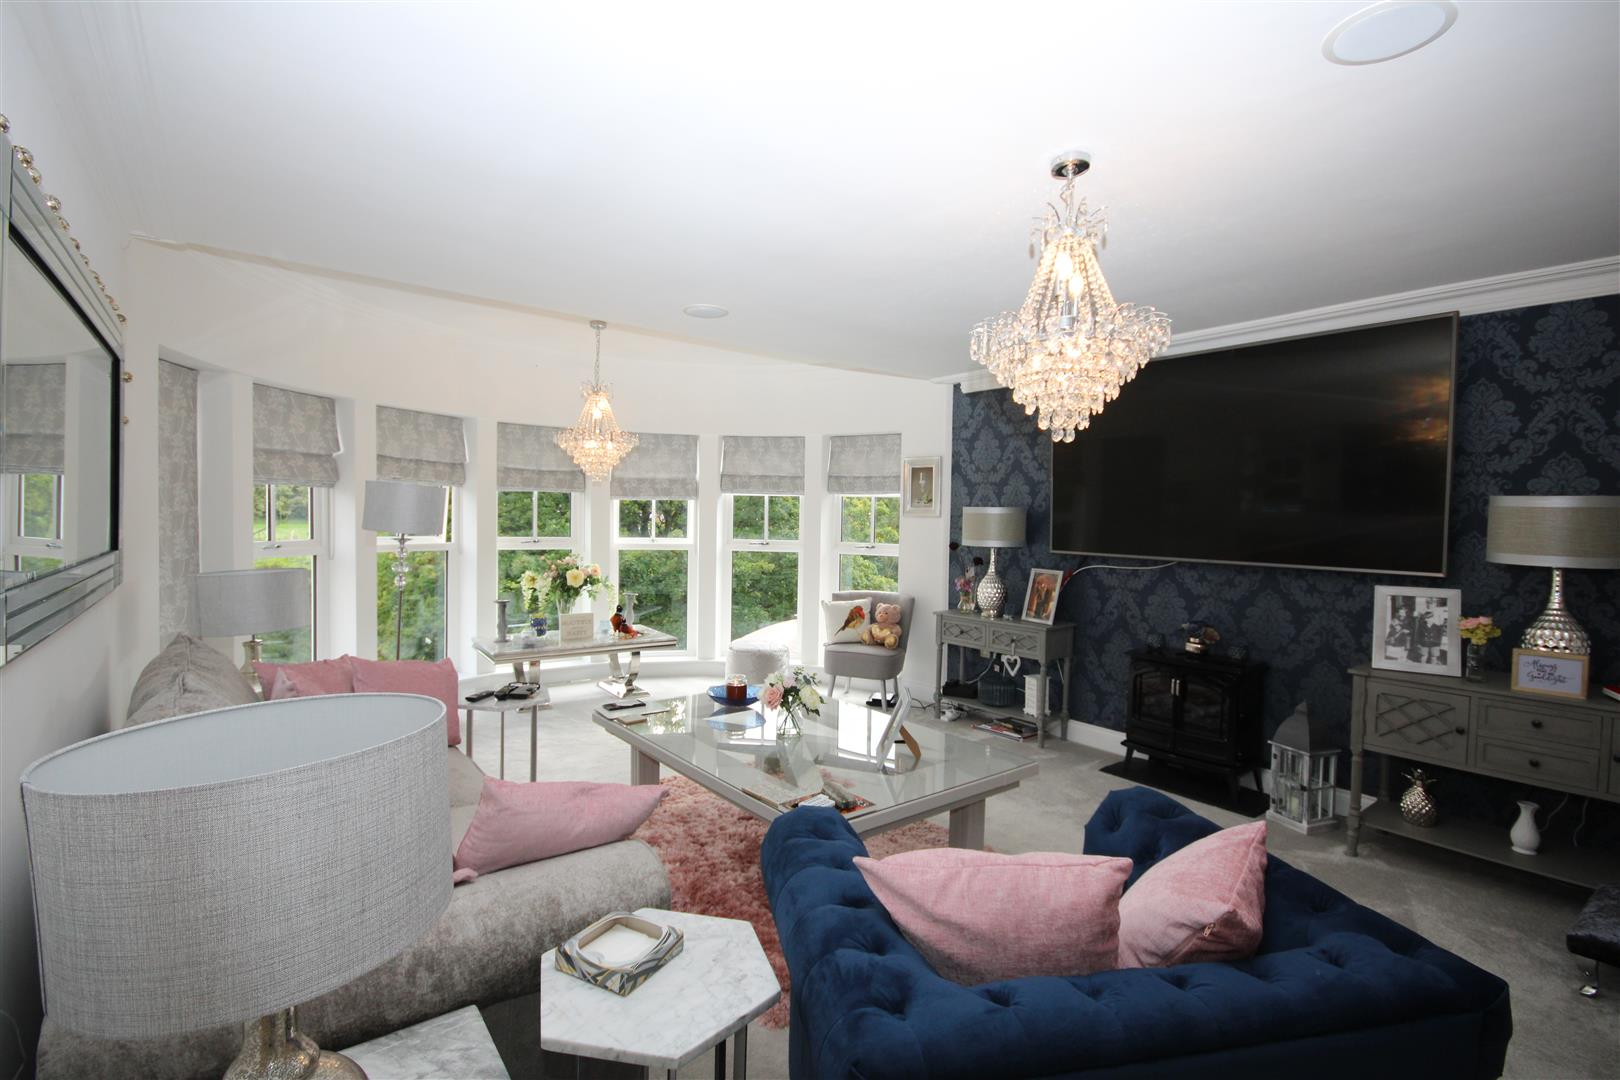 6 Bedroom Detached House For Sale In Middlesbrough